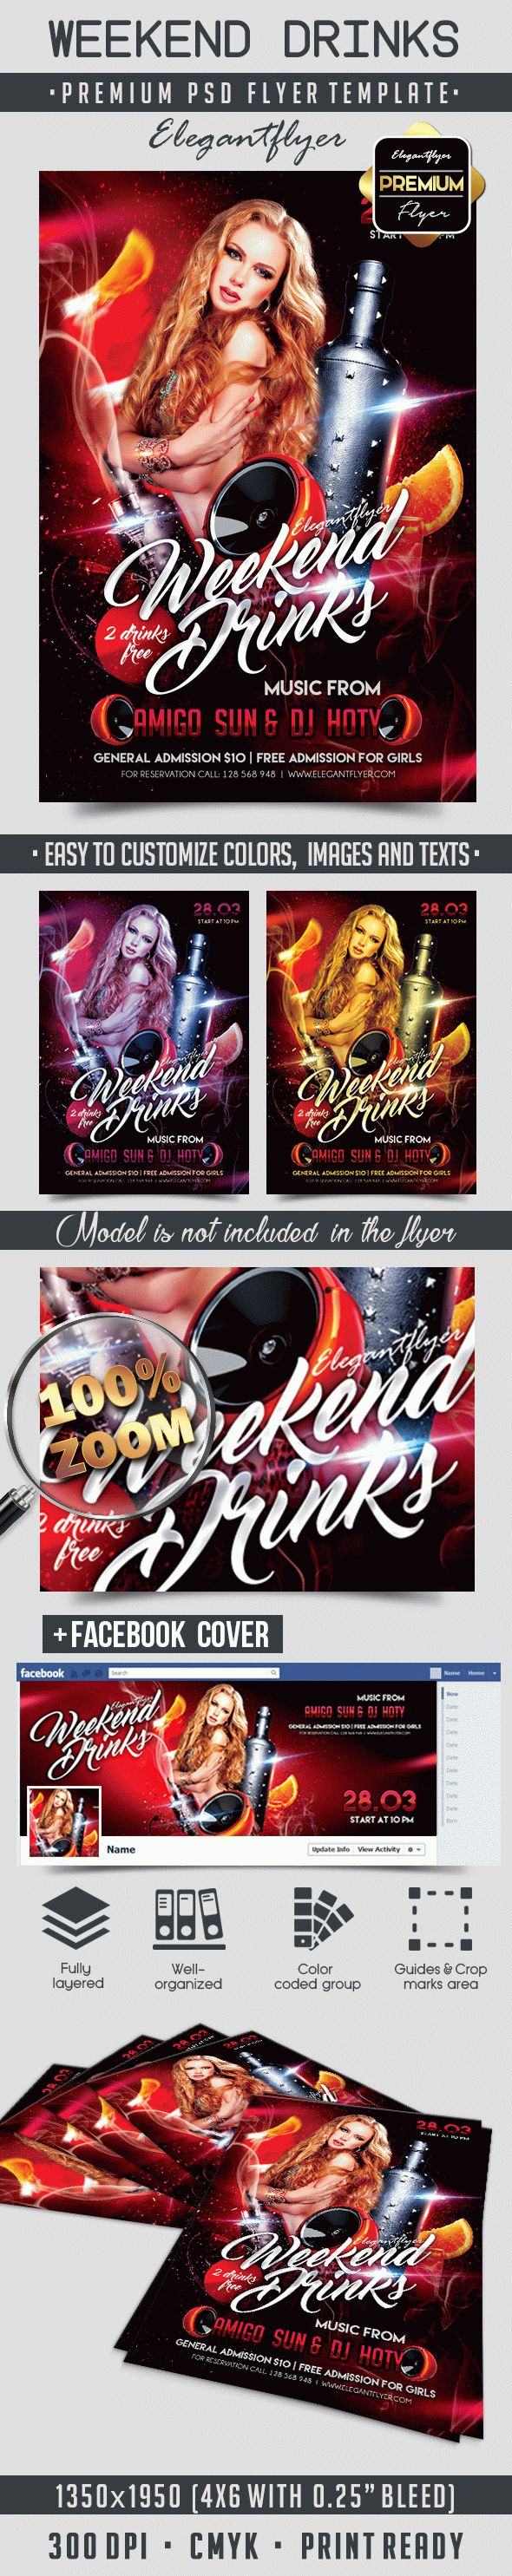 Weekend Drinks – Flyer PSD Template + Facebook Cover